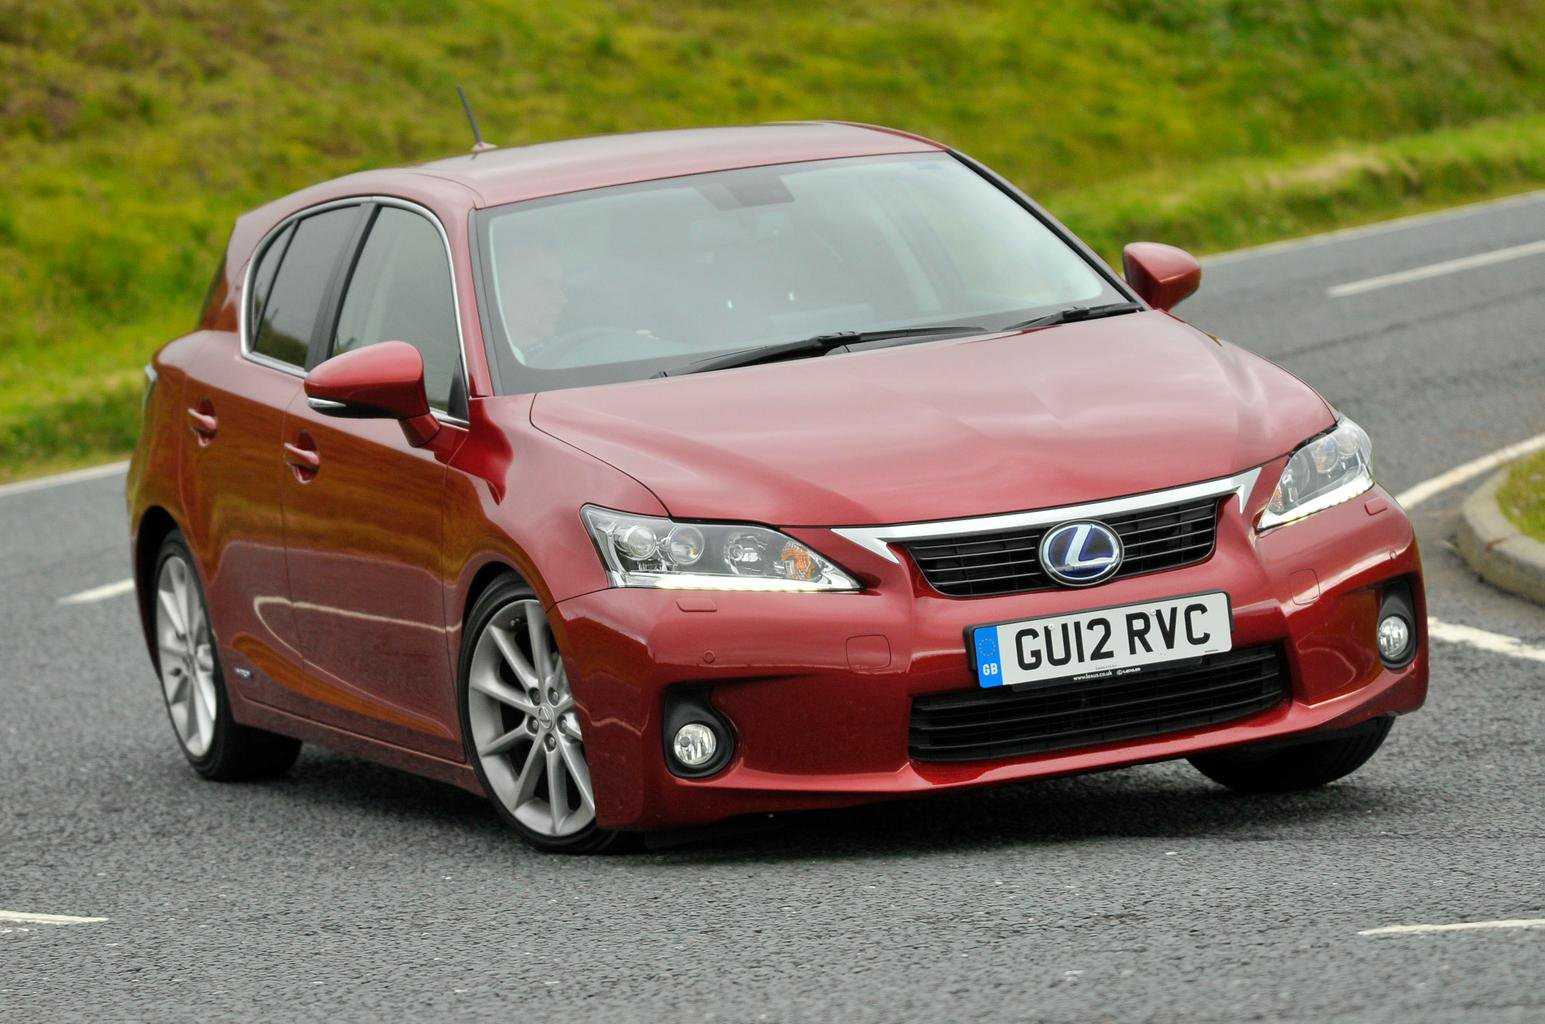 Used BMW 1 Series vs Lexus CT200h vs Volkswagen Golf vs Volvo V40